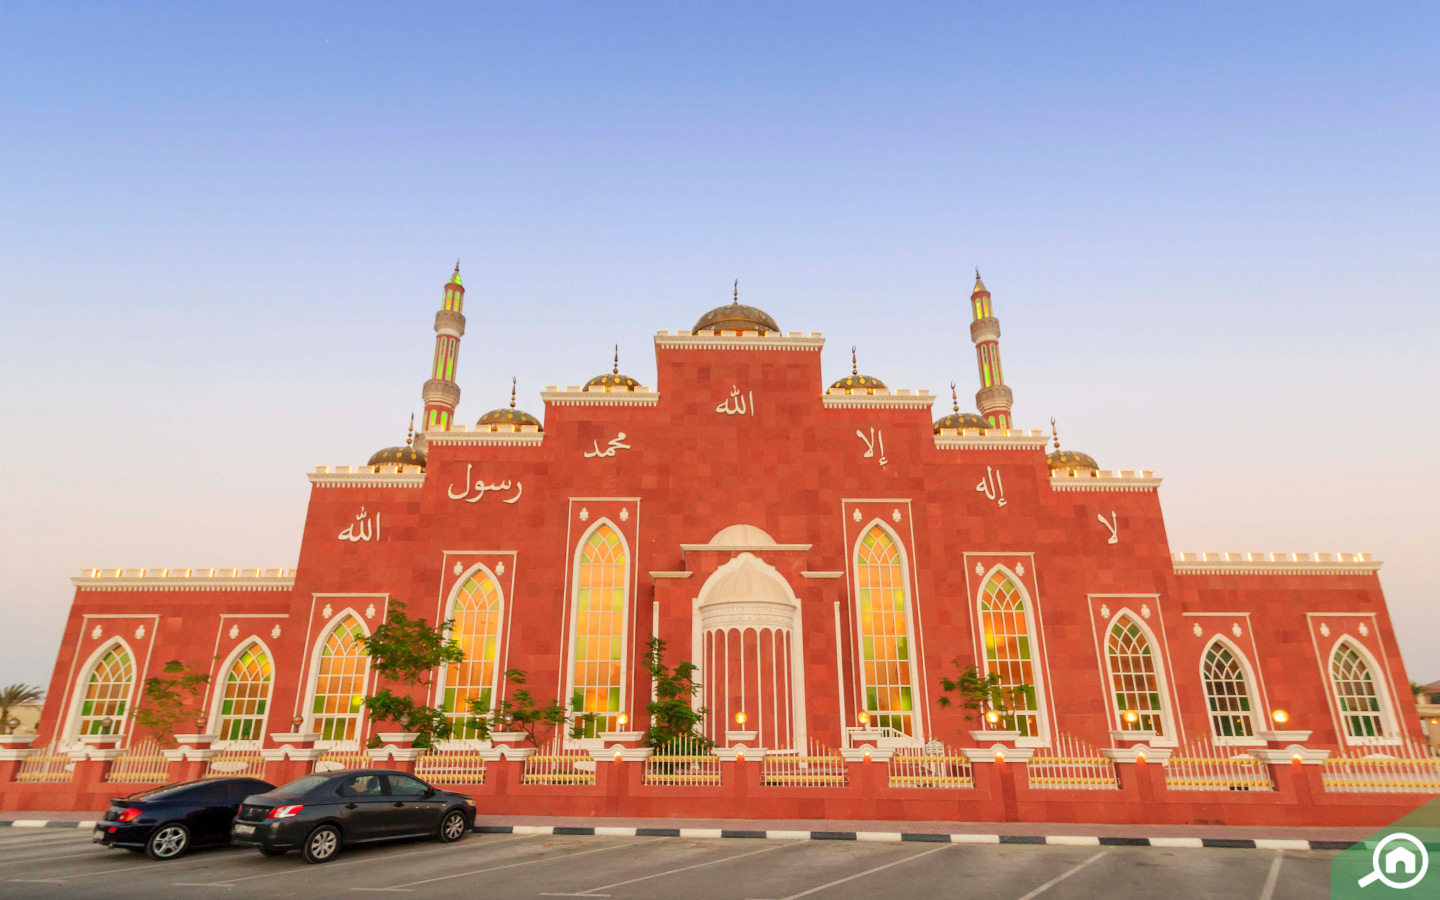 Offer 5 time prayers in most beautiful mosque in Dubai at Al Barsha